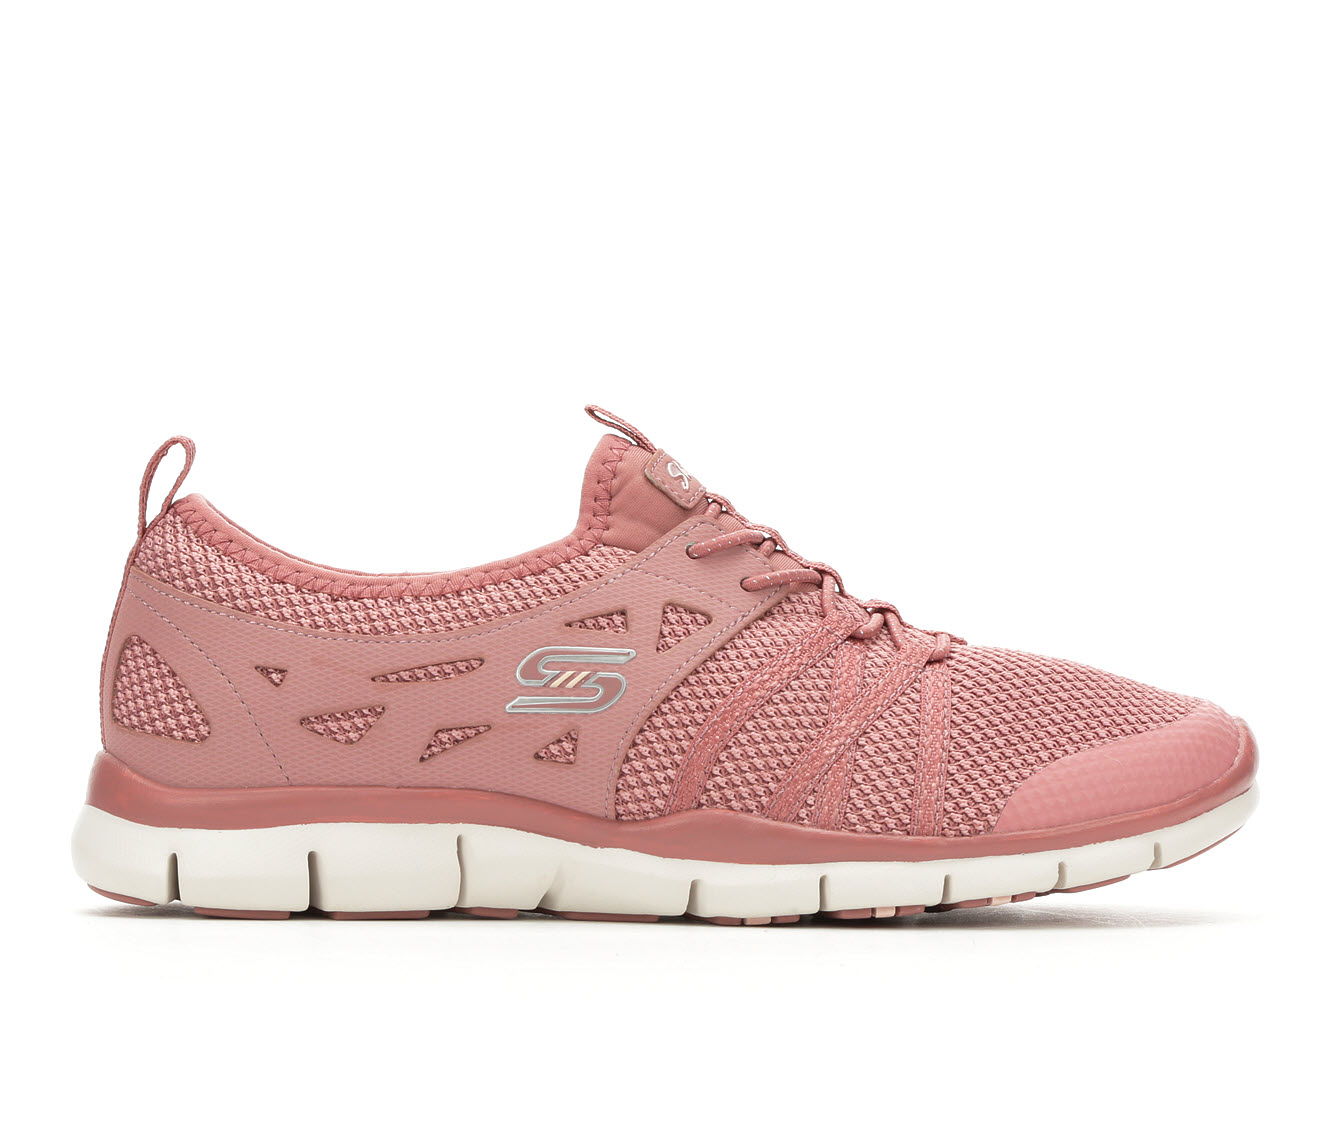 Skechers What A Sight 23360 Women's Athletic Shoe (Pink)